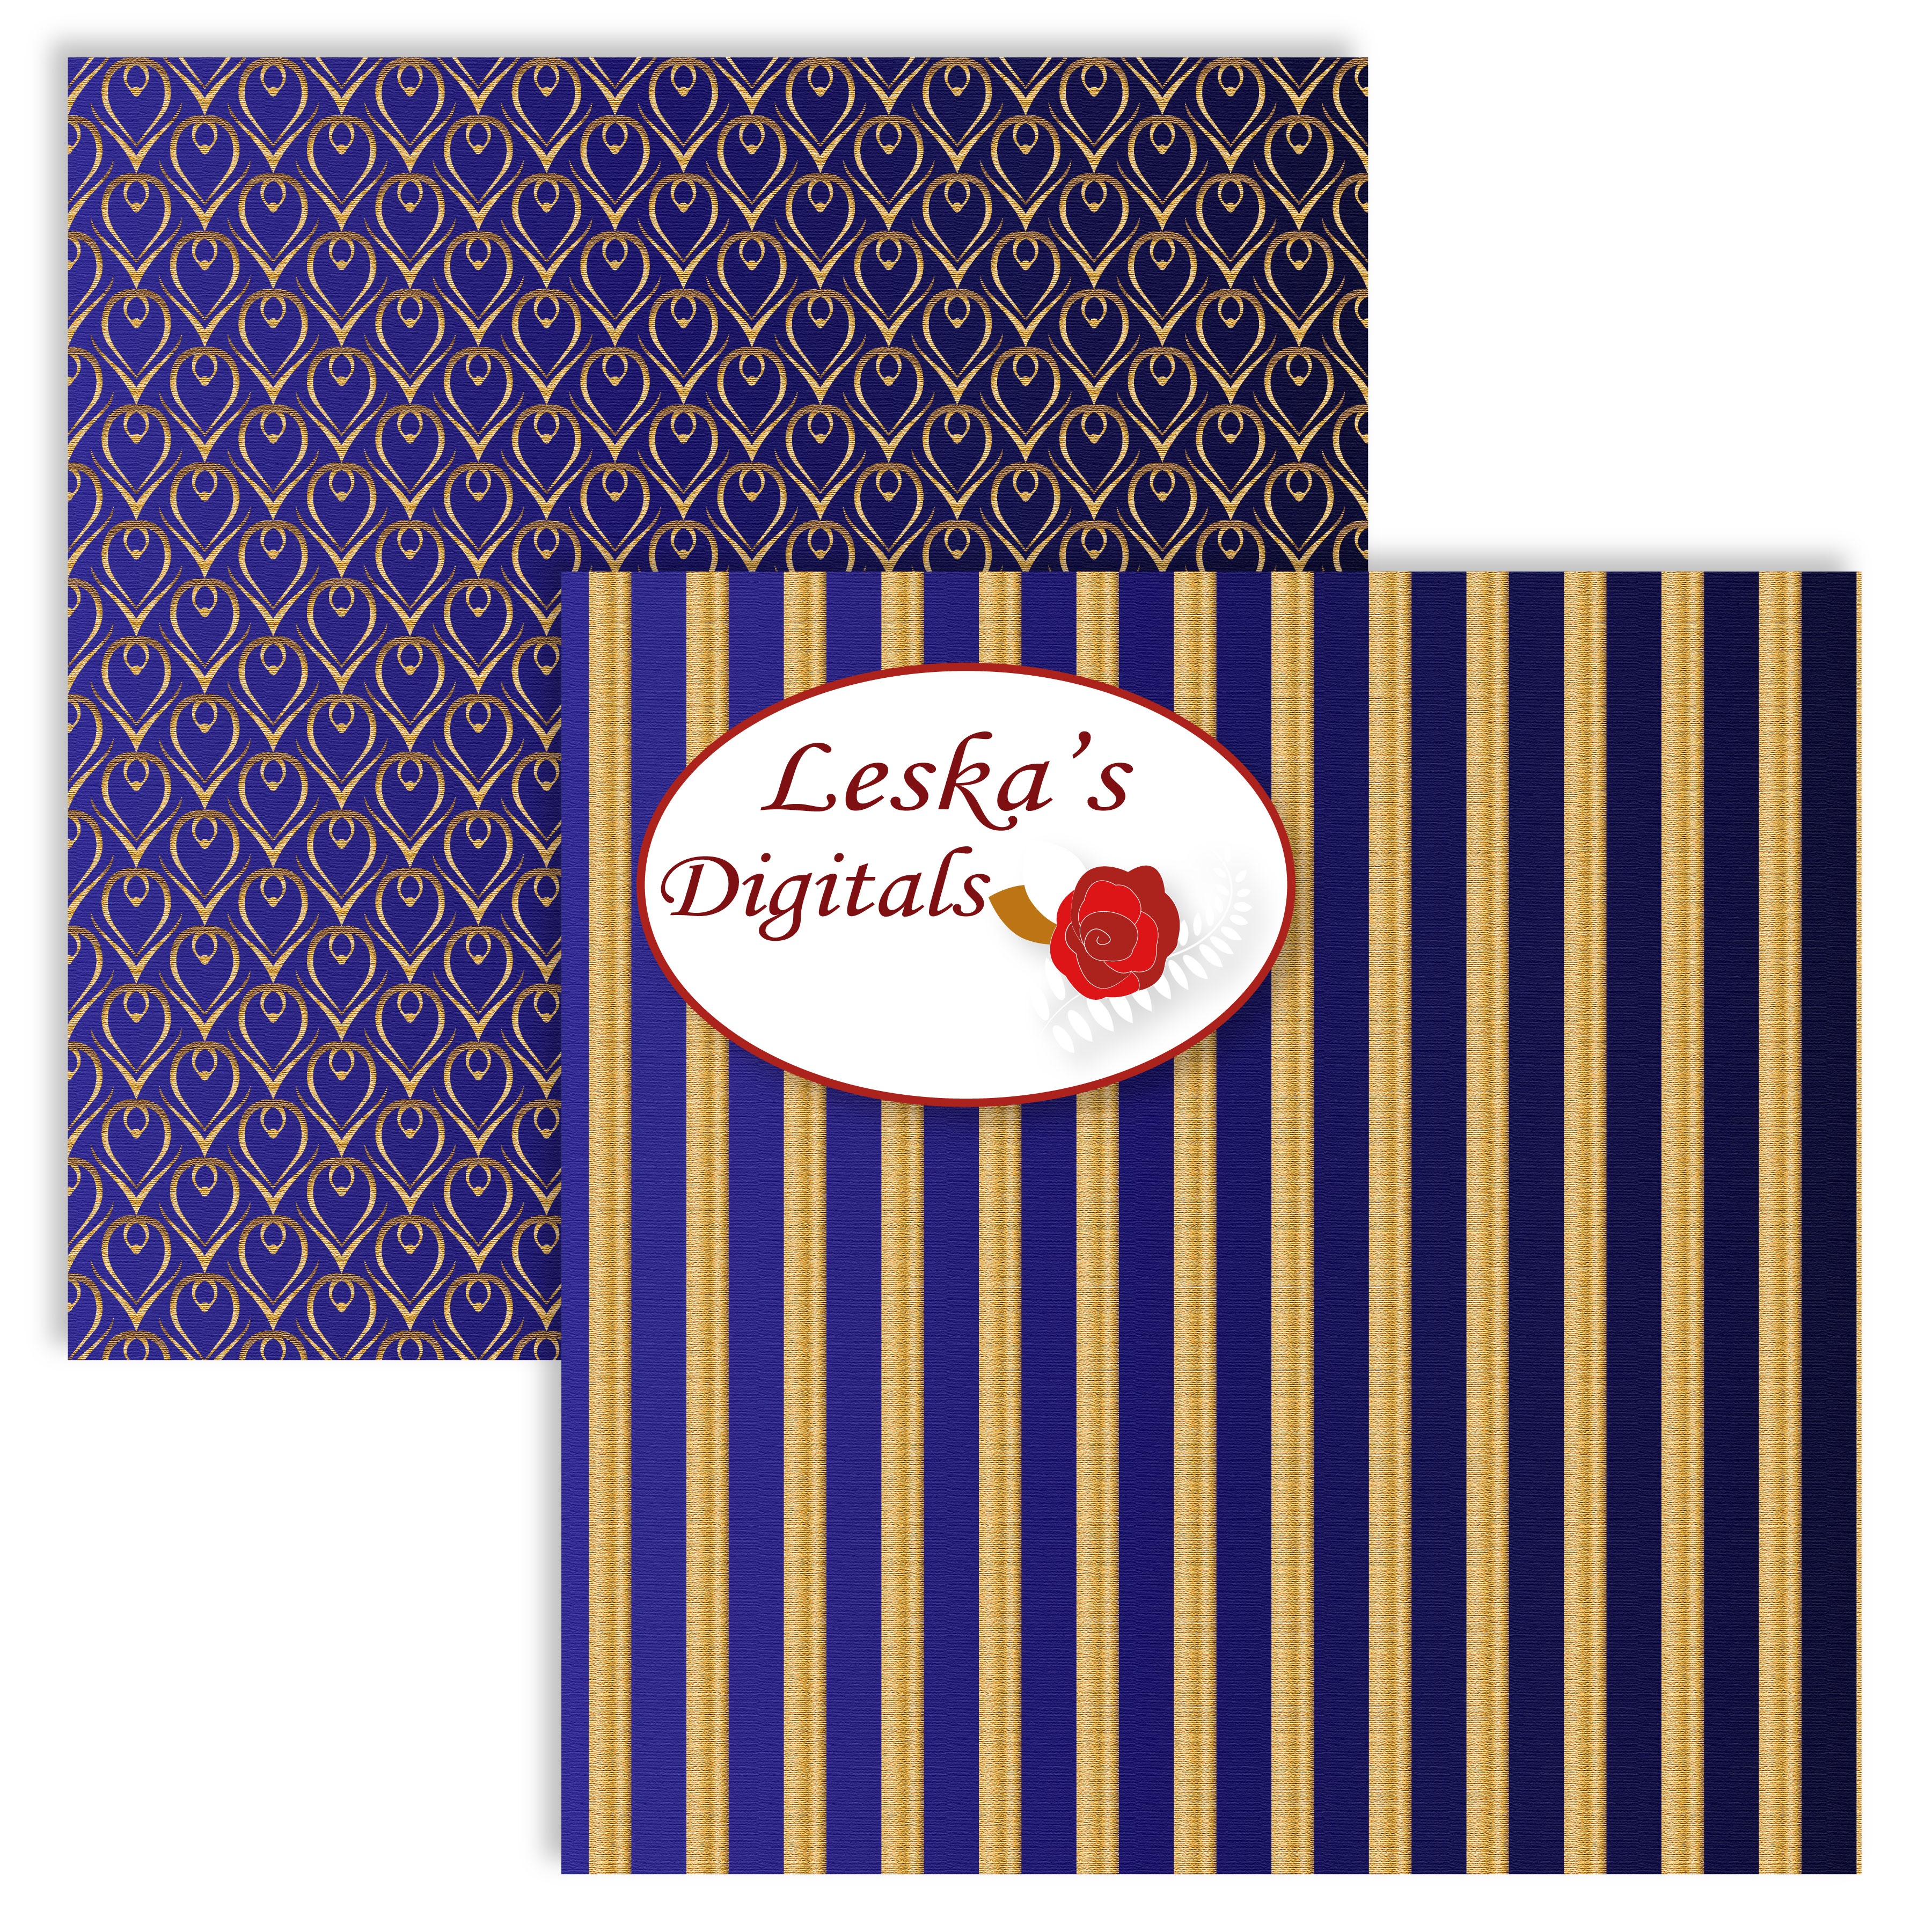 Royal Blue and Gold Digital Backgrounds example image 2